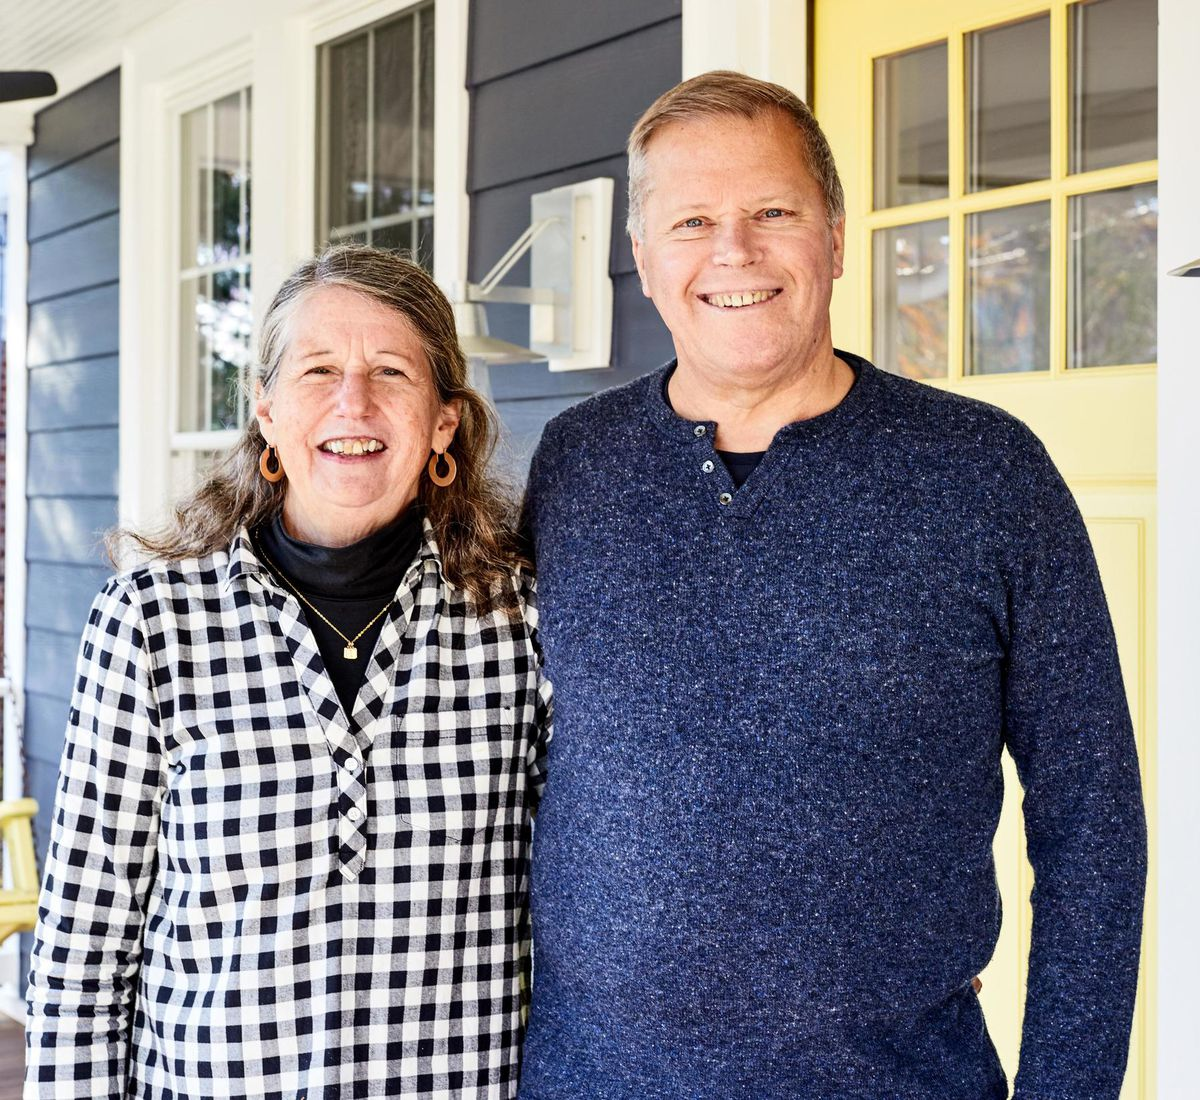 Spring 2021, House Tour: Liverman, homeowners Cathy and Andy Liverman